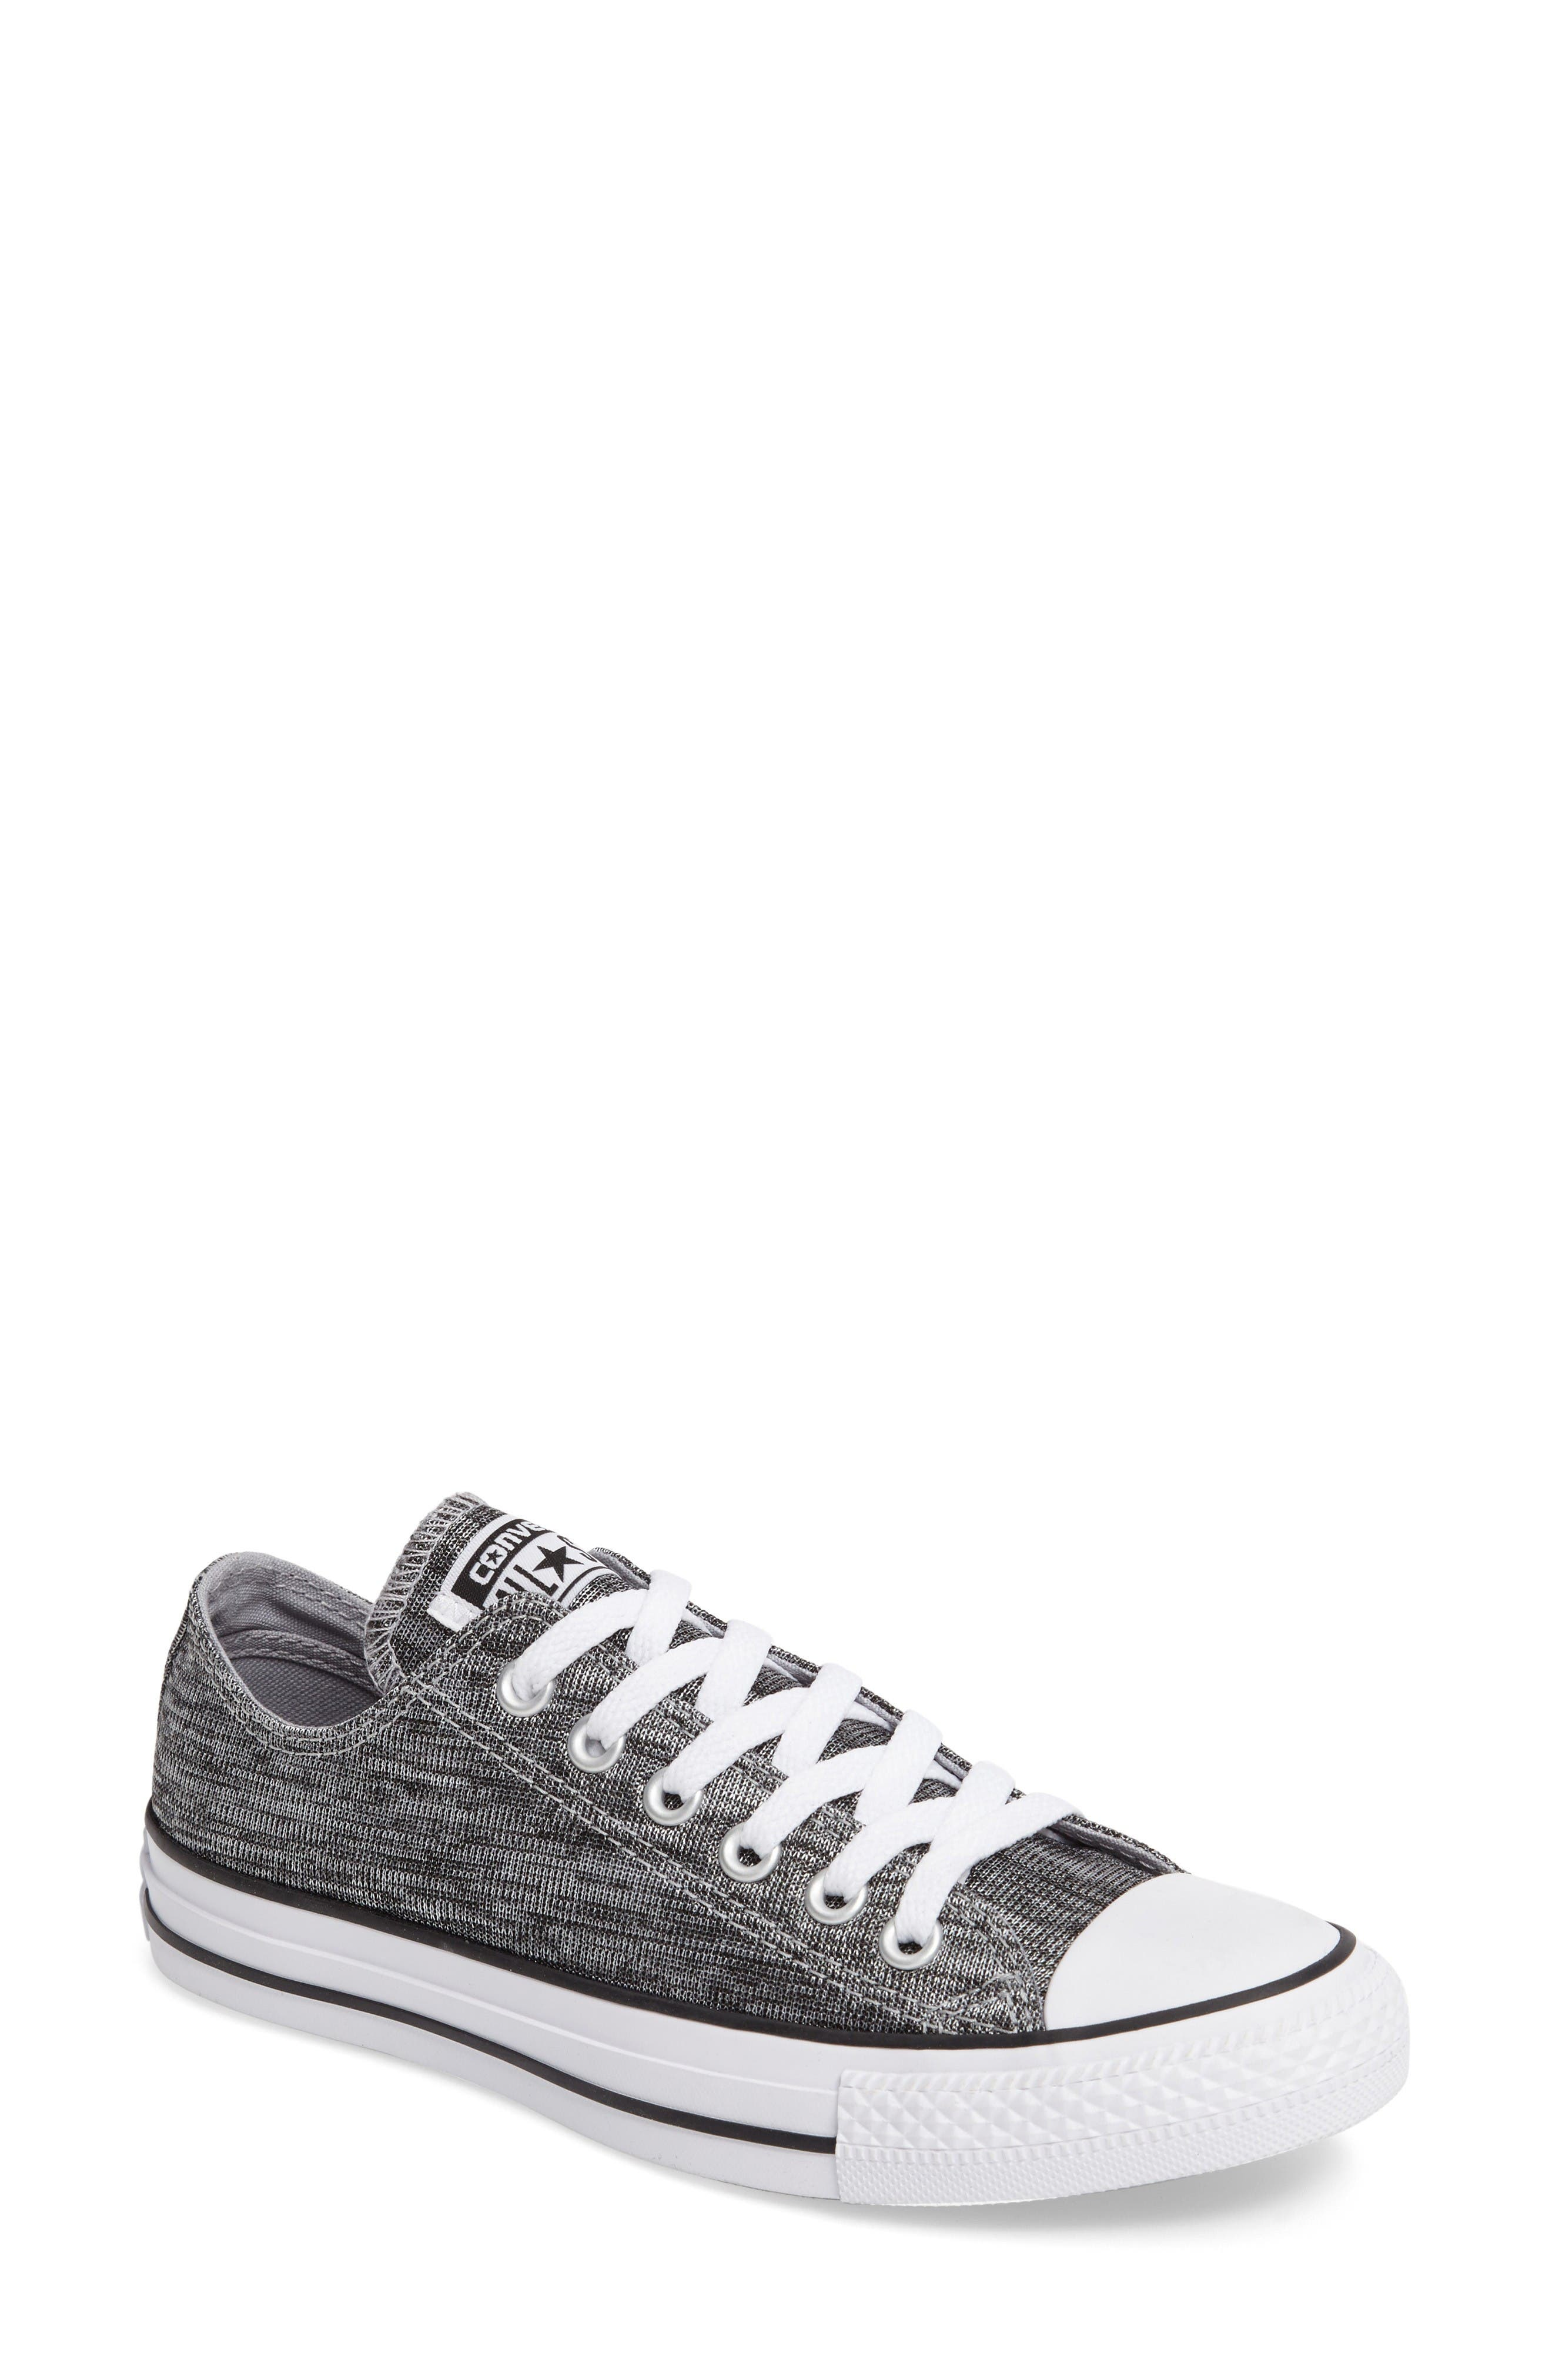 Alternate Image 1 Selected - Converse Chuck Taylor® All Star® Knit Low Top Sneaker (Women)